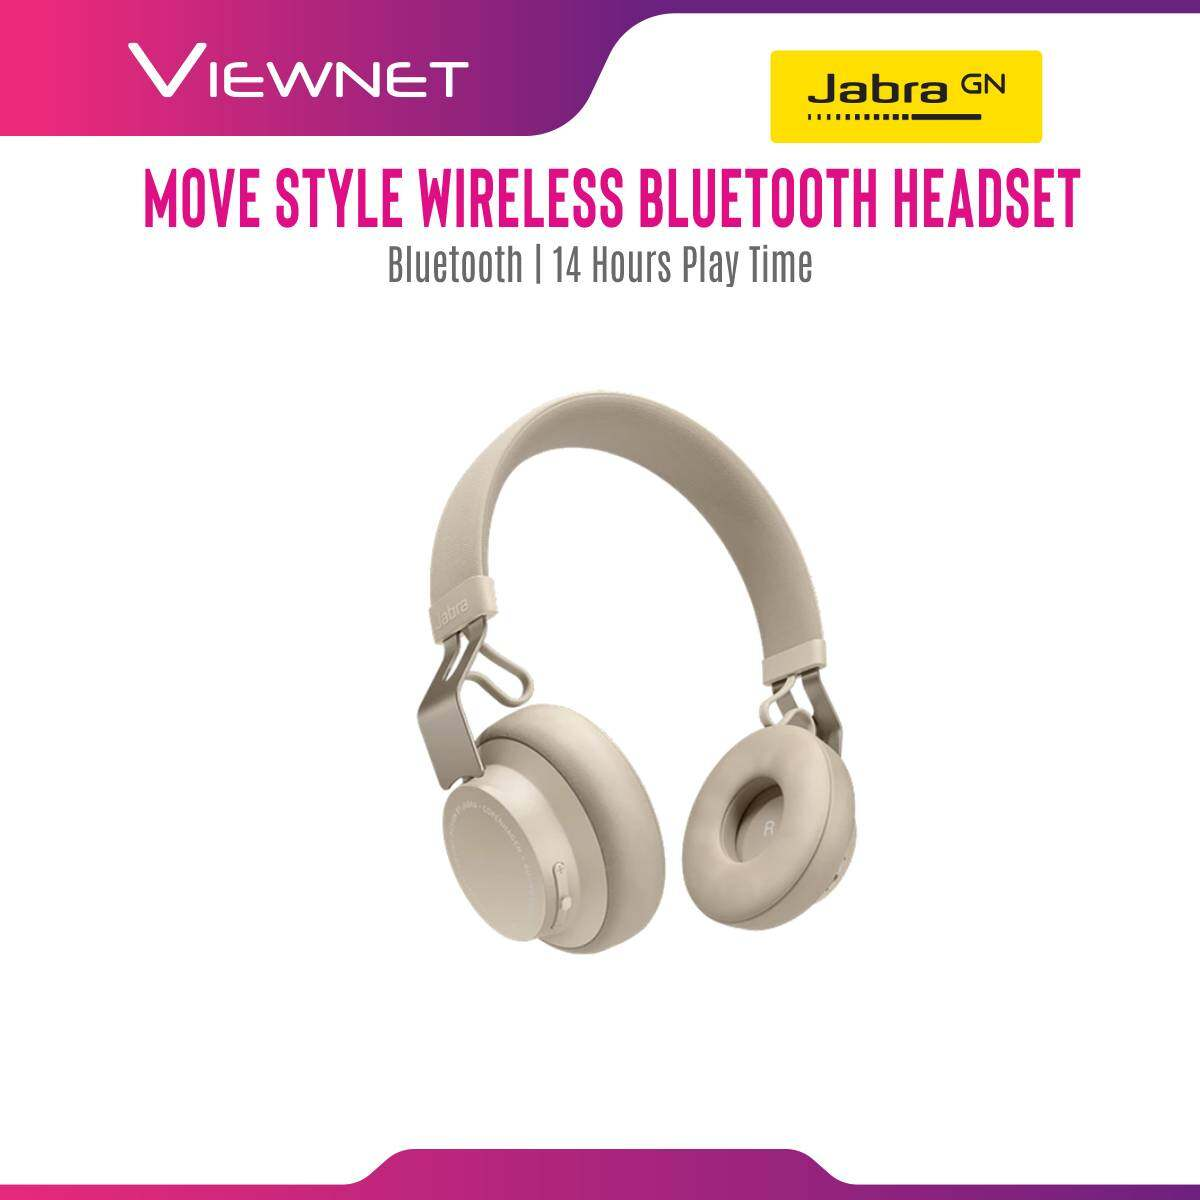 Jabra Wireless Headset Move Style with Bluetooth 4.0 Connection, 14 Hours Play Time, 40MM Dynamic Driver